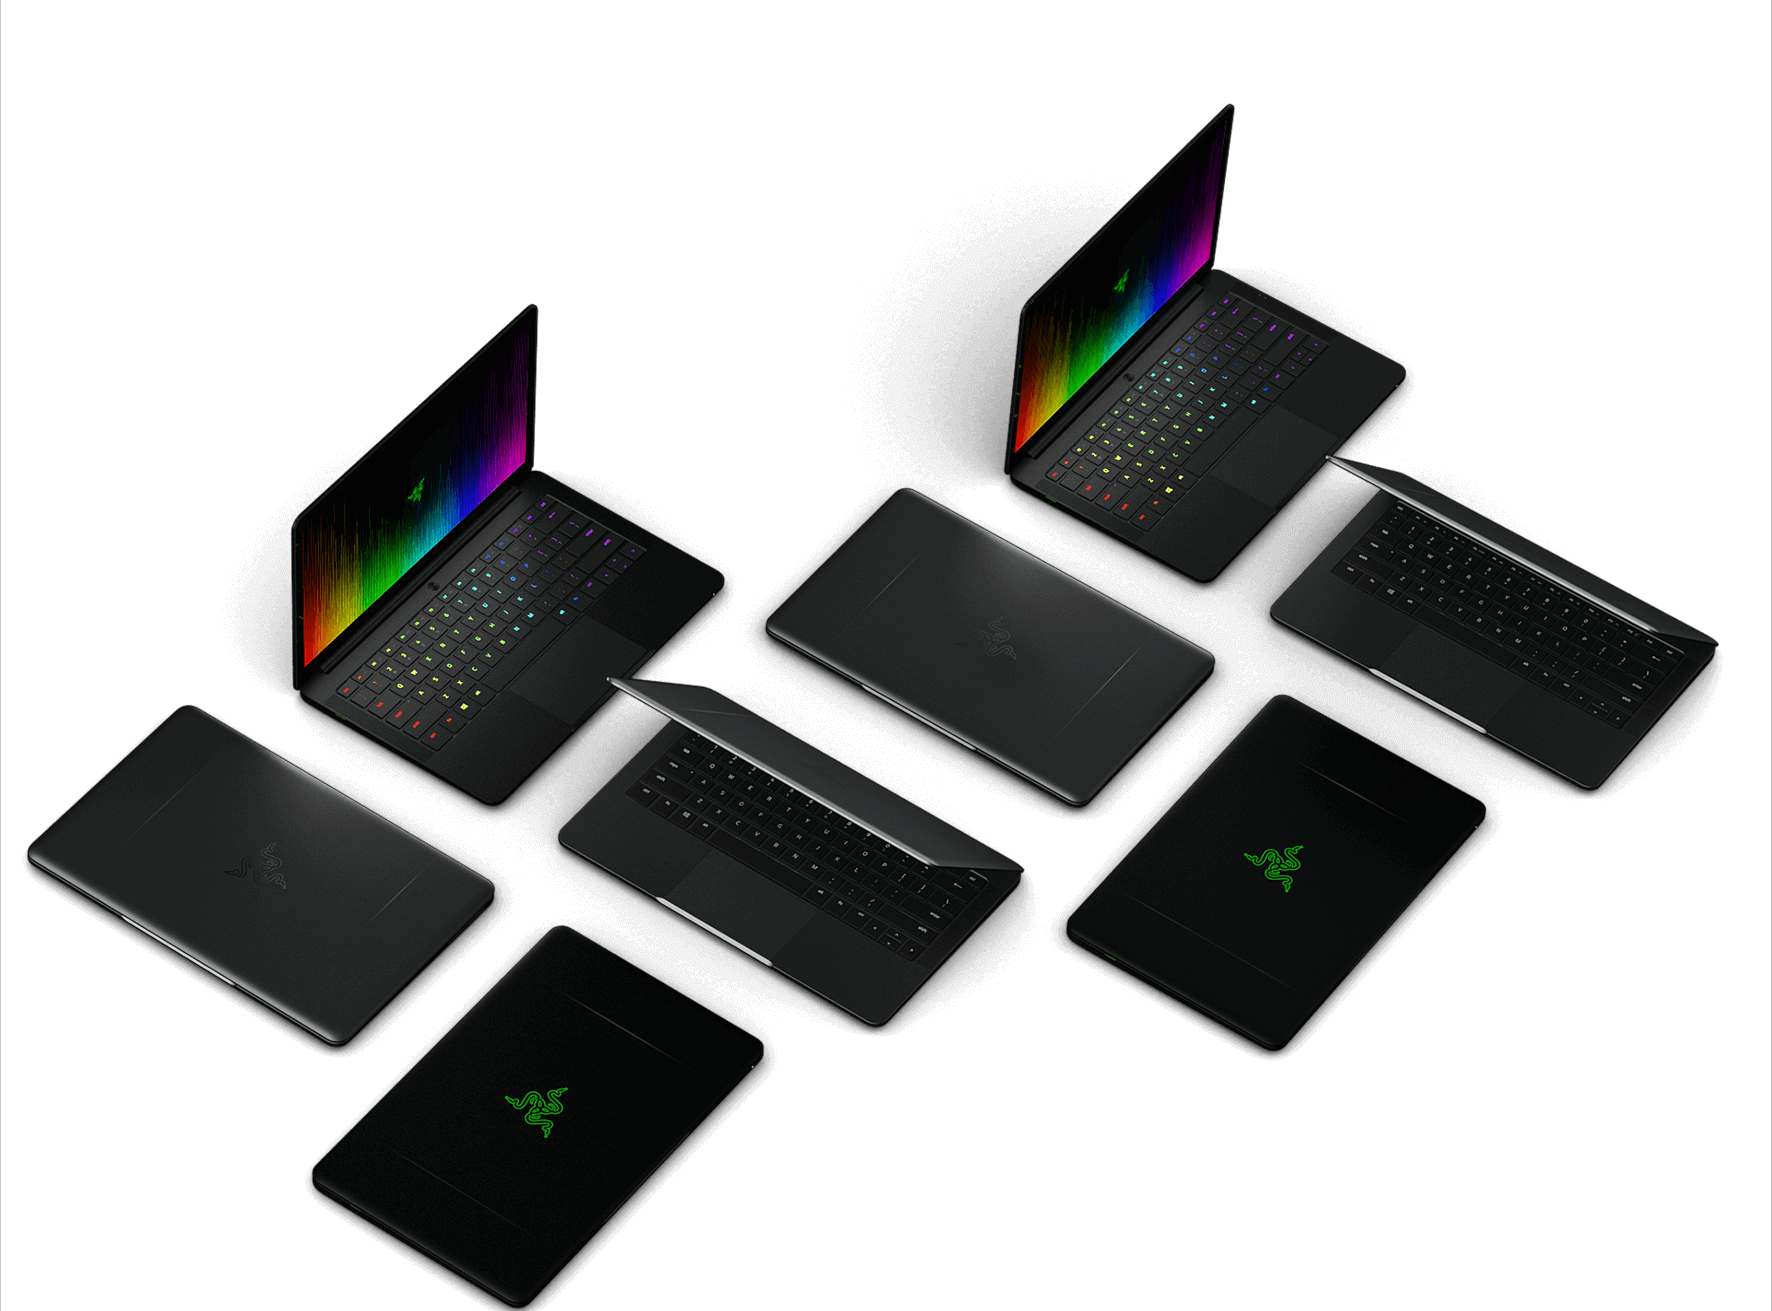 Source: Razer